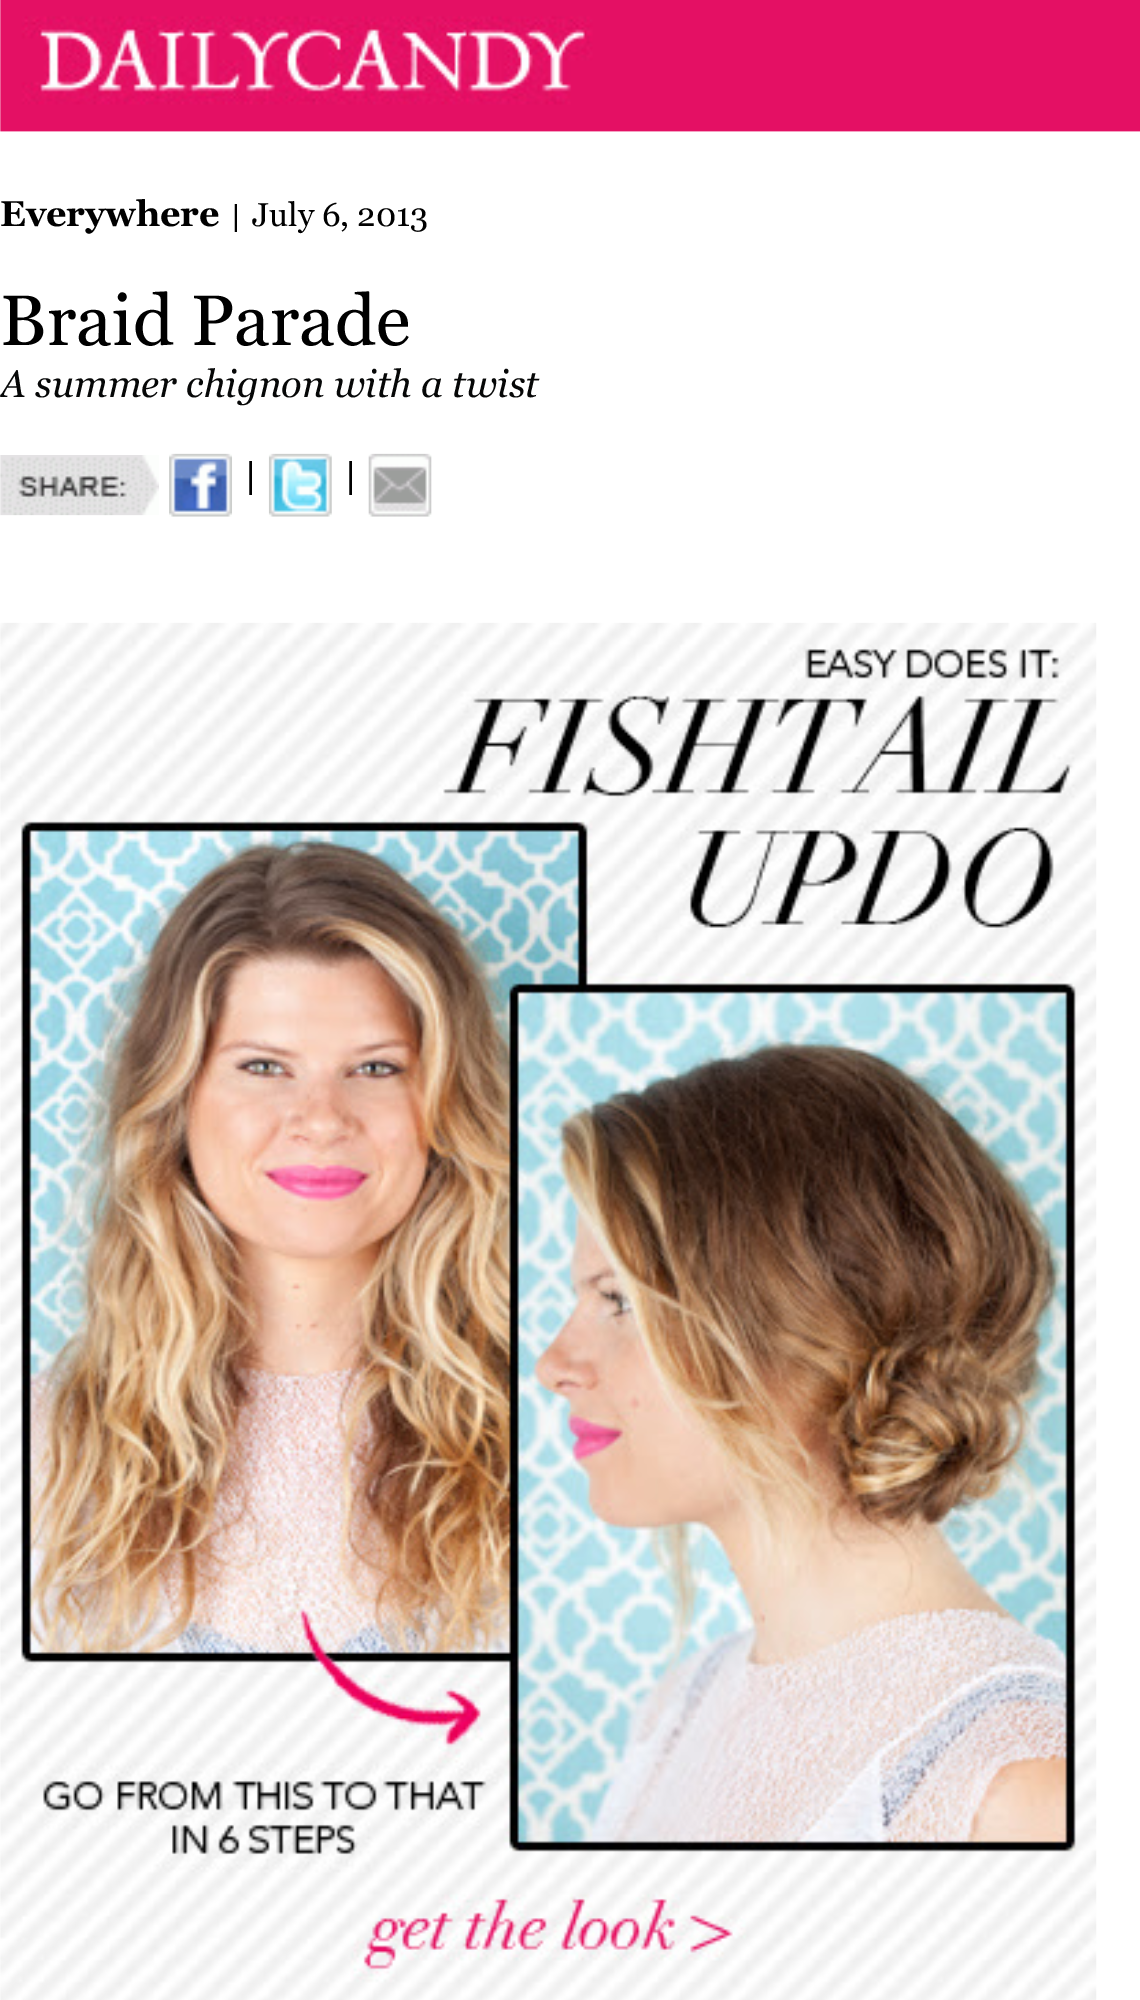 DC-Braided-Updo-Email.png